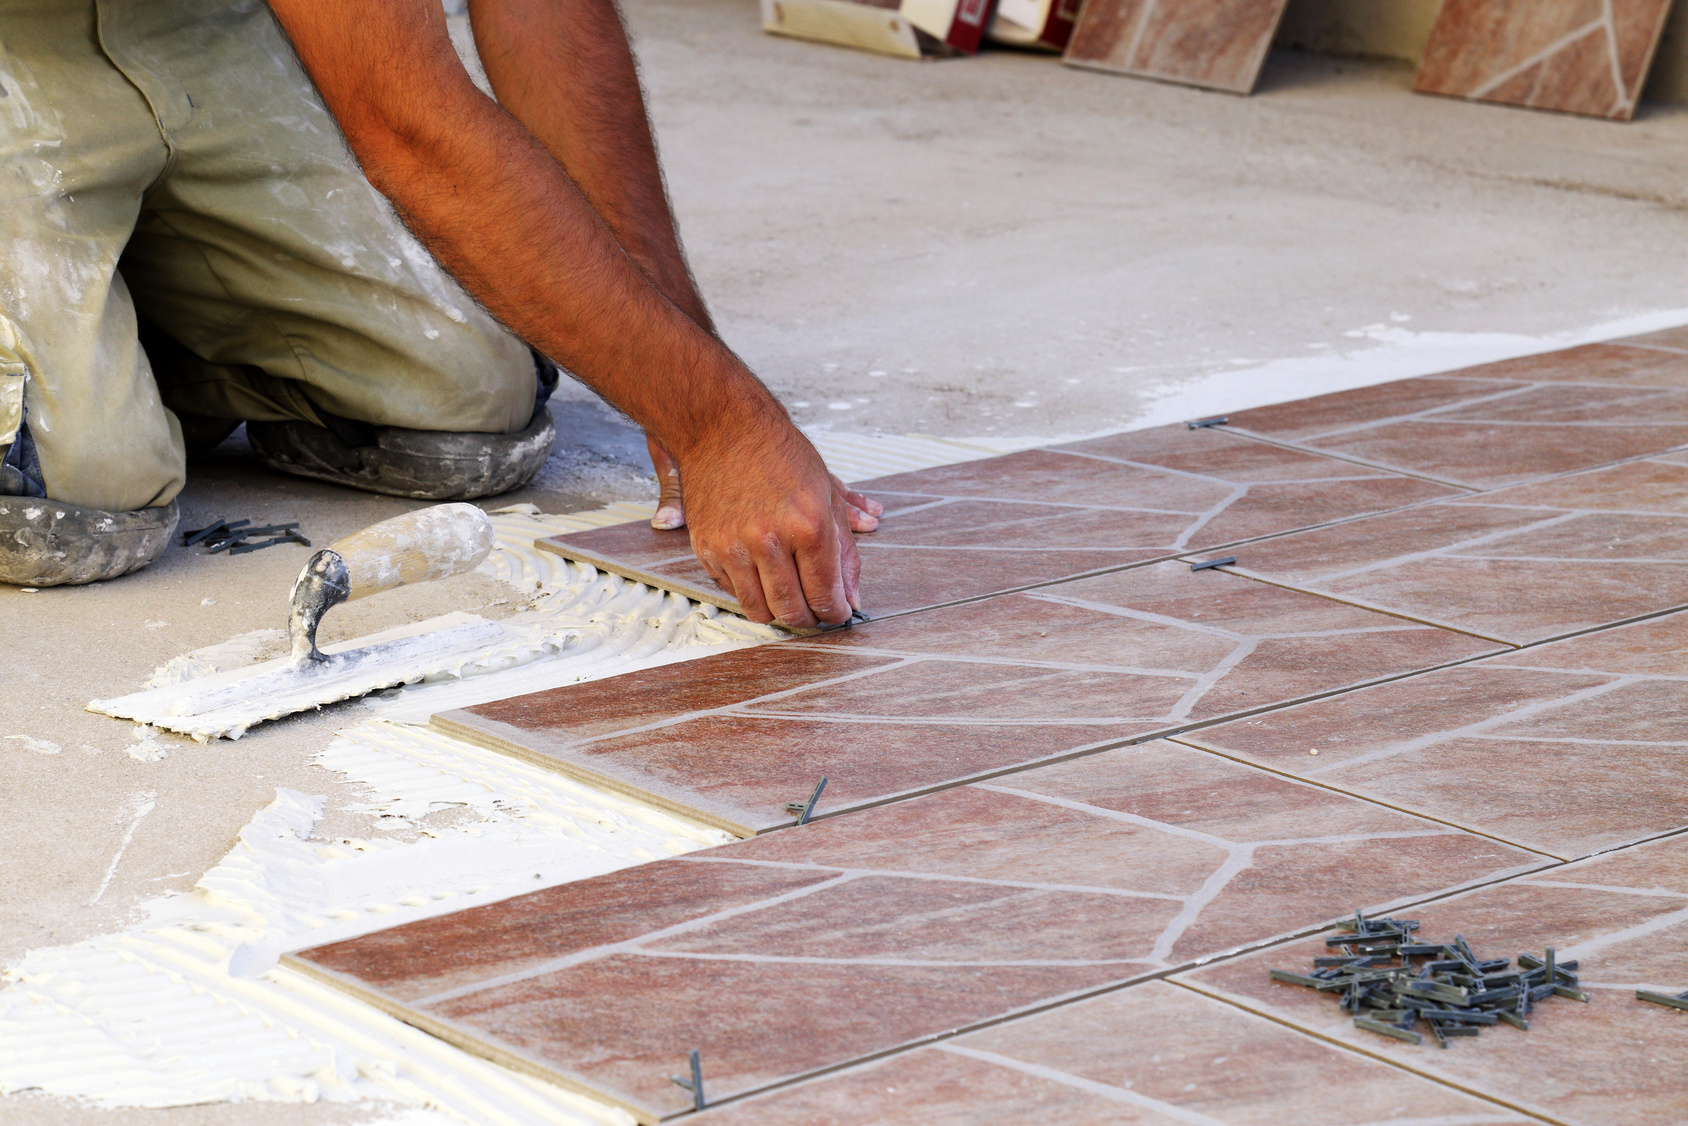 4 things to consider before selecting tile flooring ready for new floor installation tile is a wonderful quality option get just the look you want with these 4 tips ppazfo